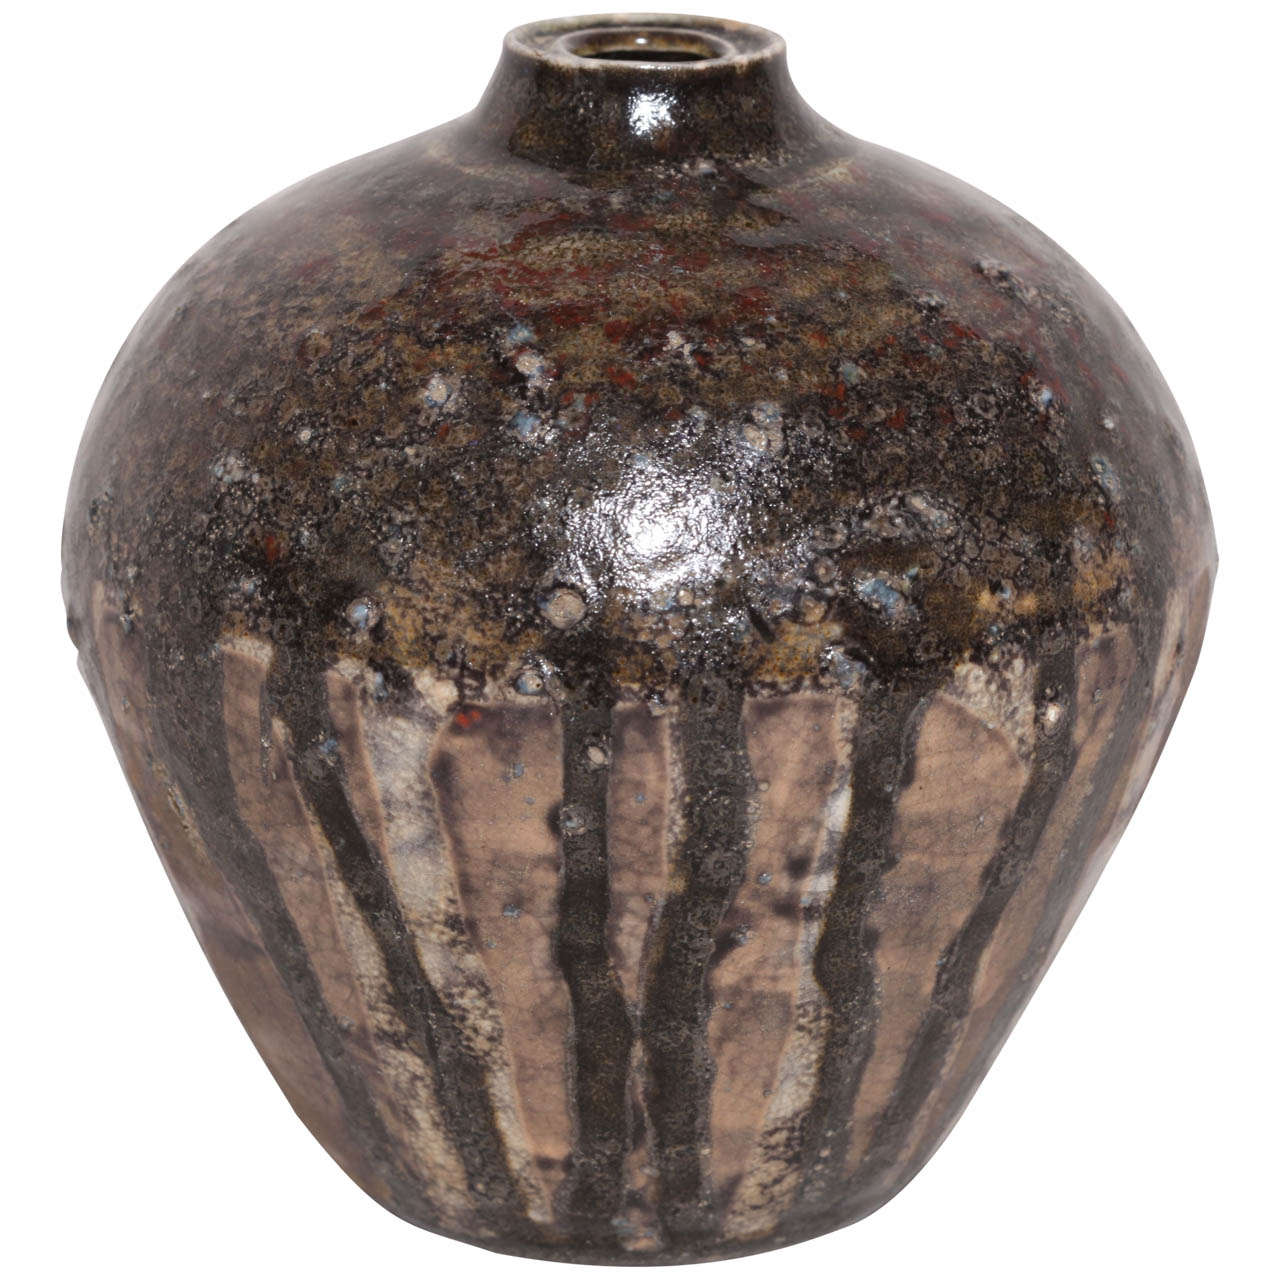 Henri Simmen French Art Deco Small Stoneware Vase For Sale